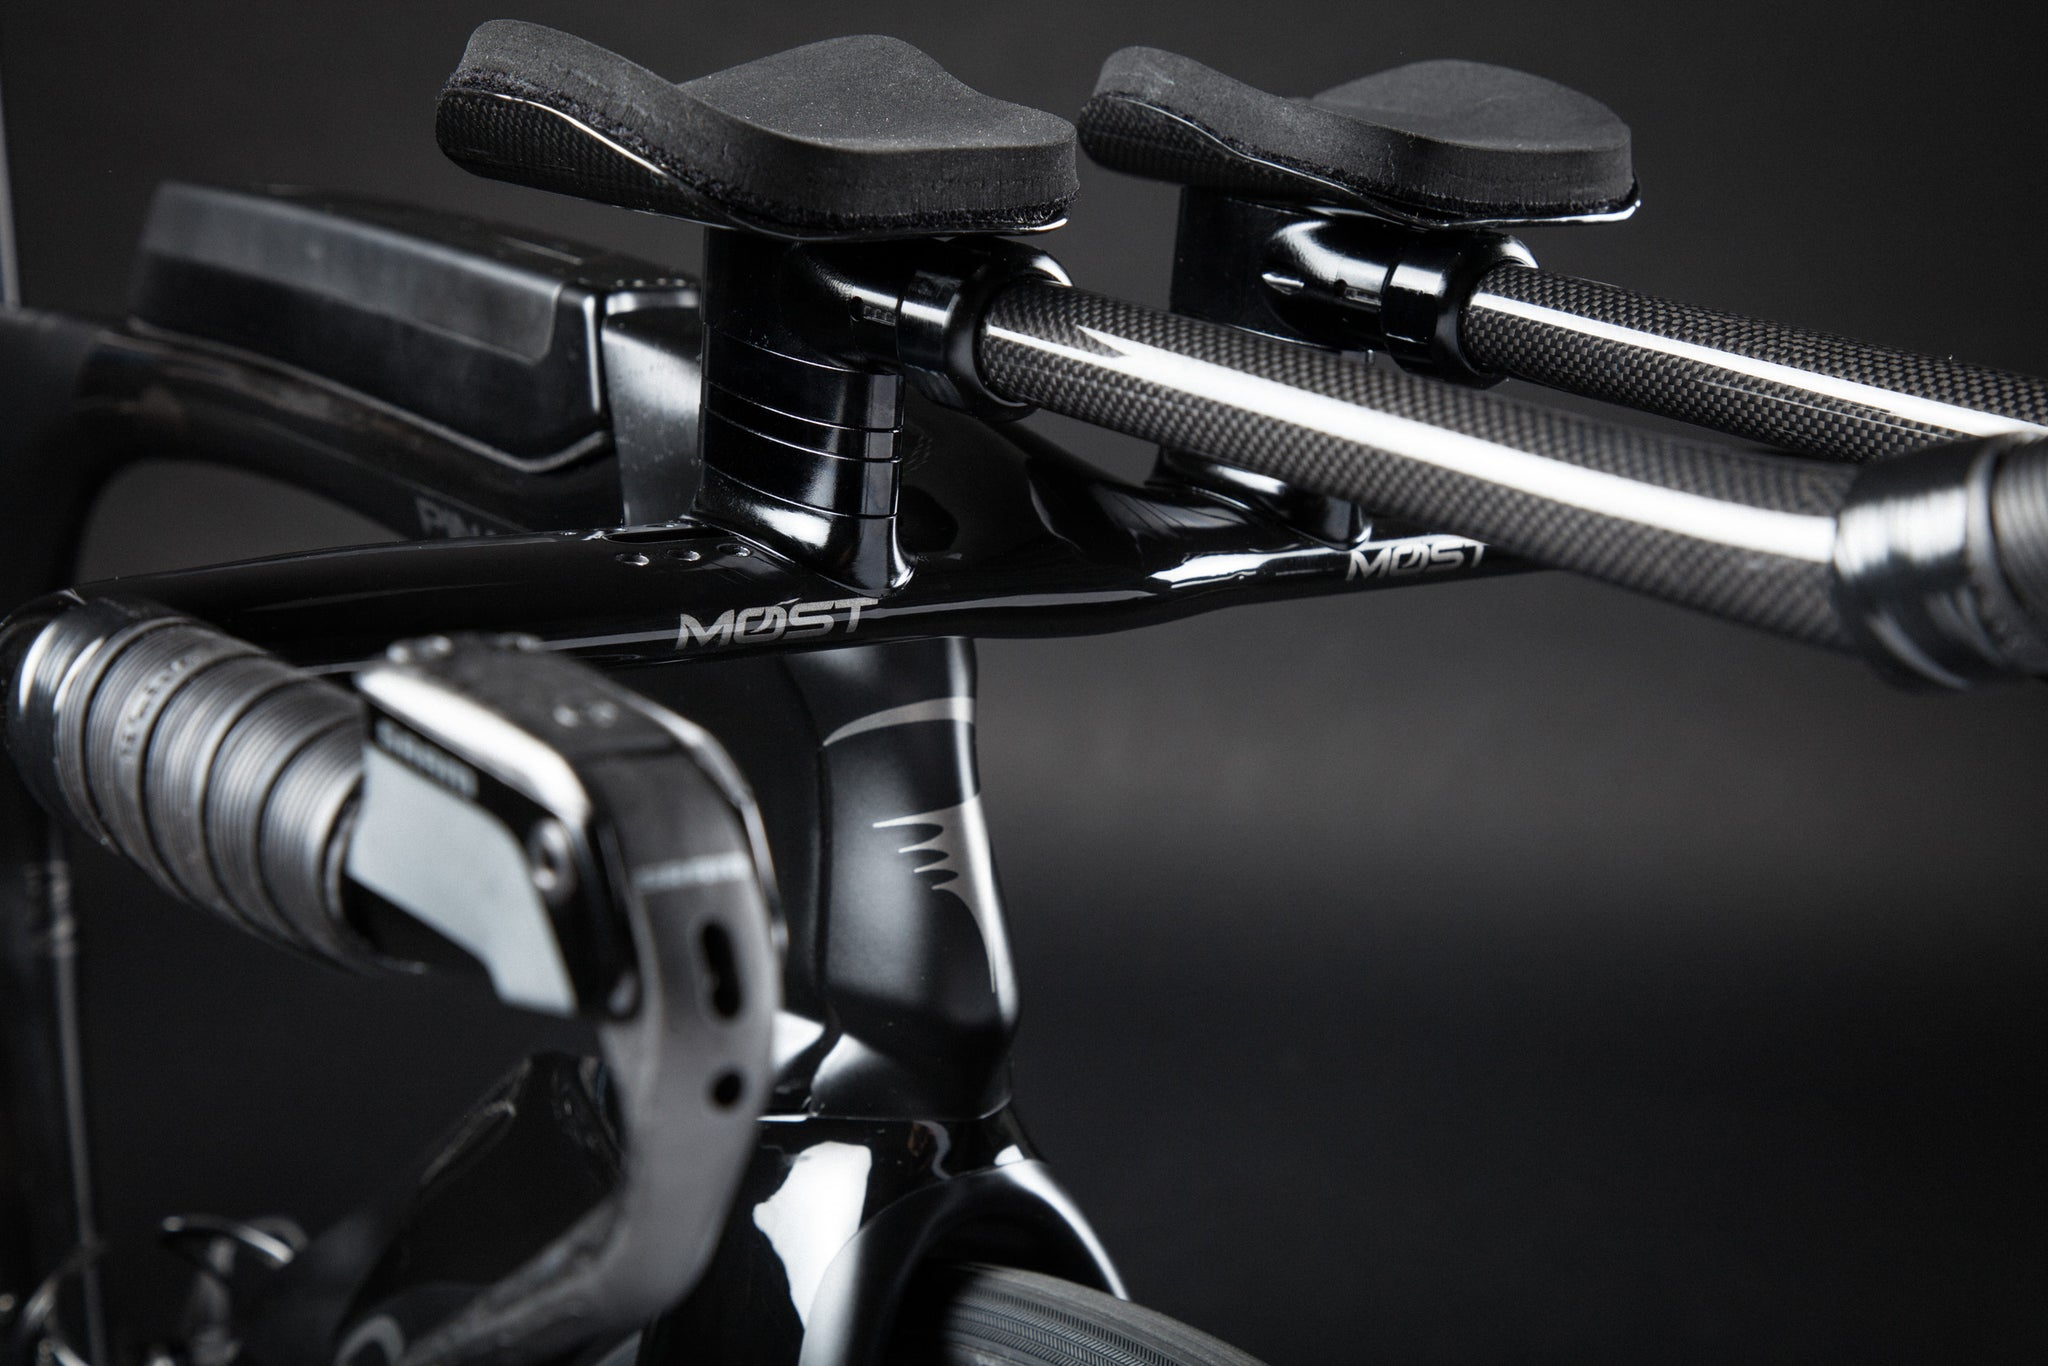 A Blacked Out Pinarello Bolide Gallery aero risers